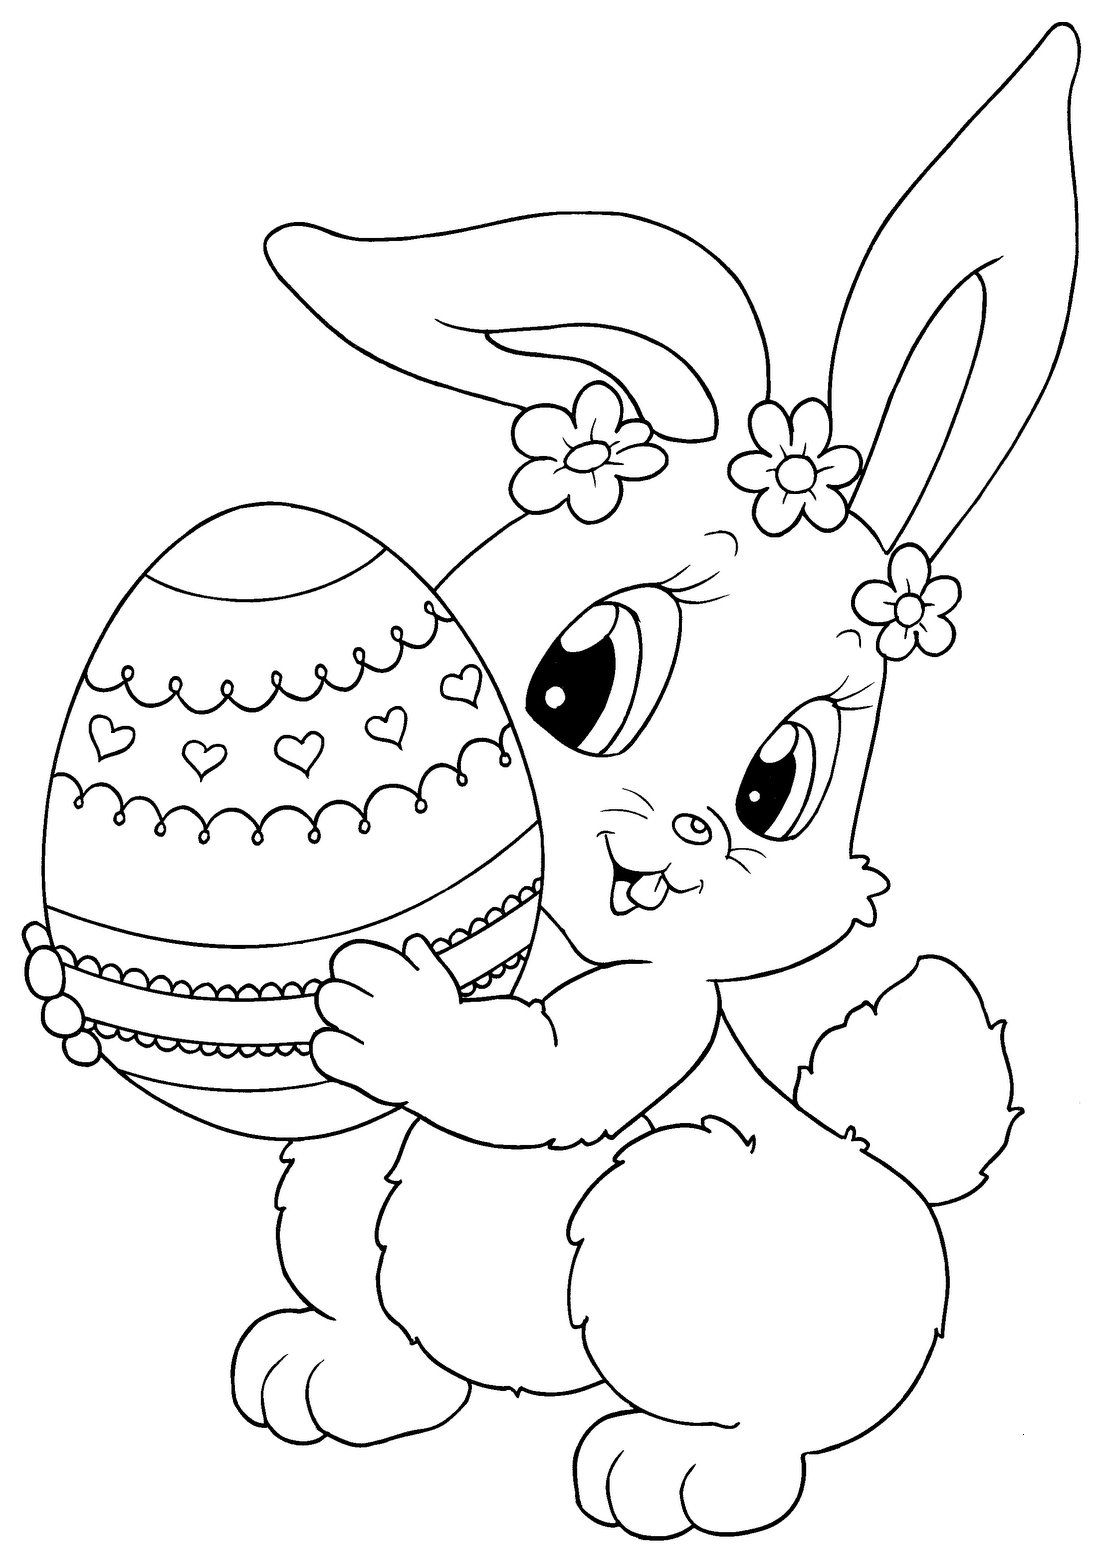 Top 15 Free Printable Easter Bunny Coloring Pages Line Gallery Of Easter Coloring14 Gallery